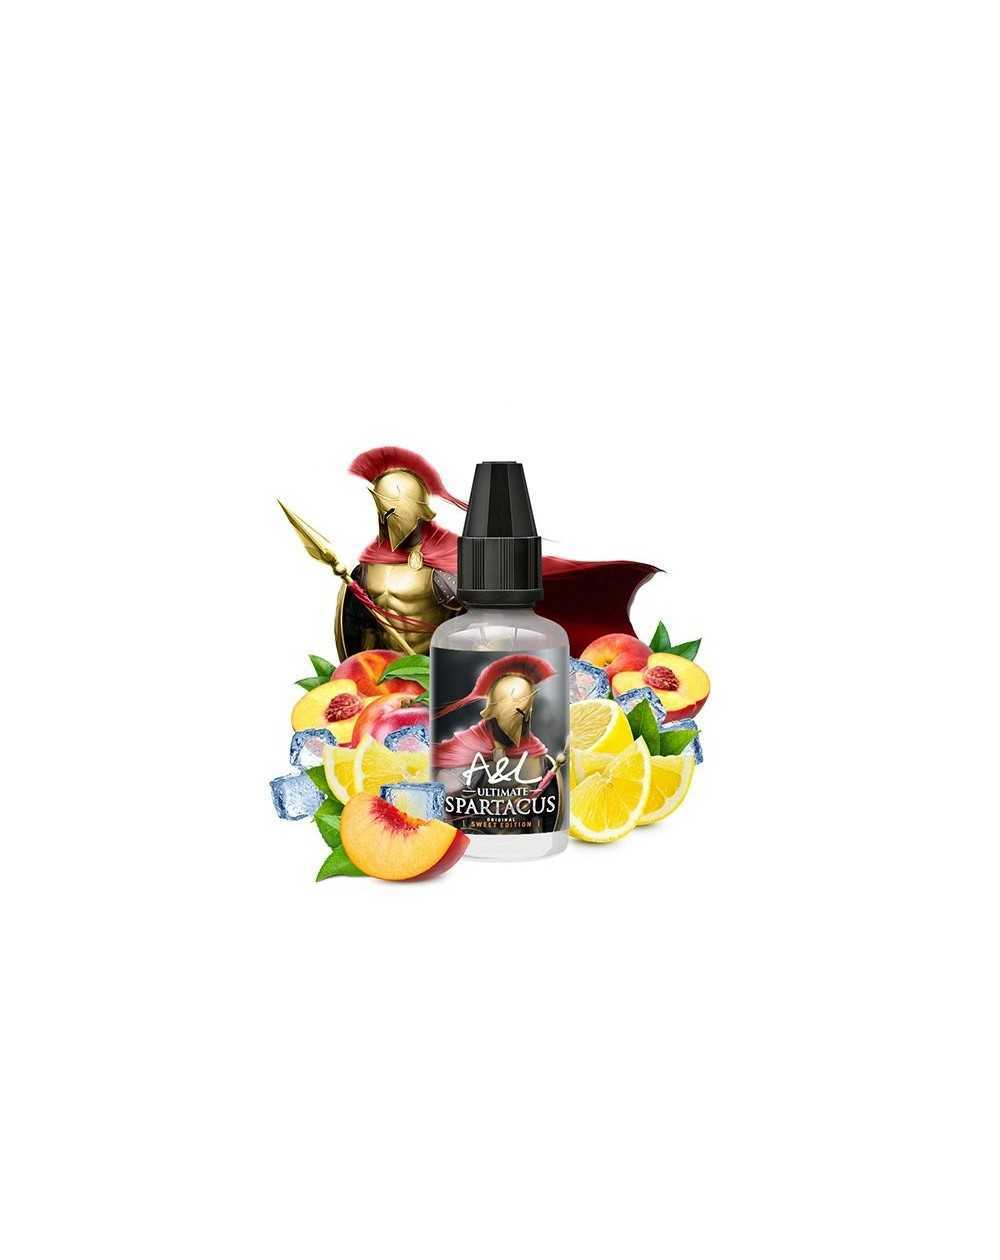 Concentrate aroma Spartacus 30ml - Ultimate of A&L-1